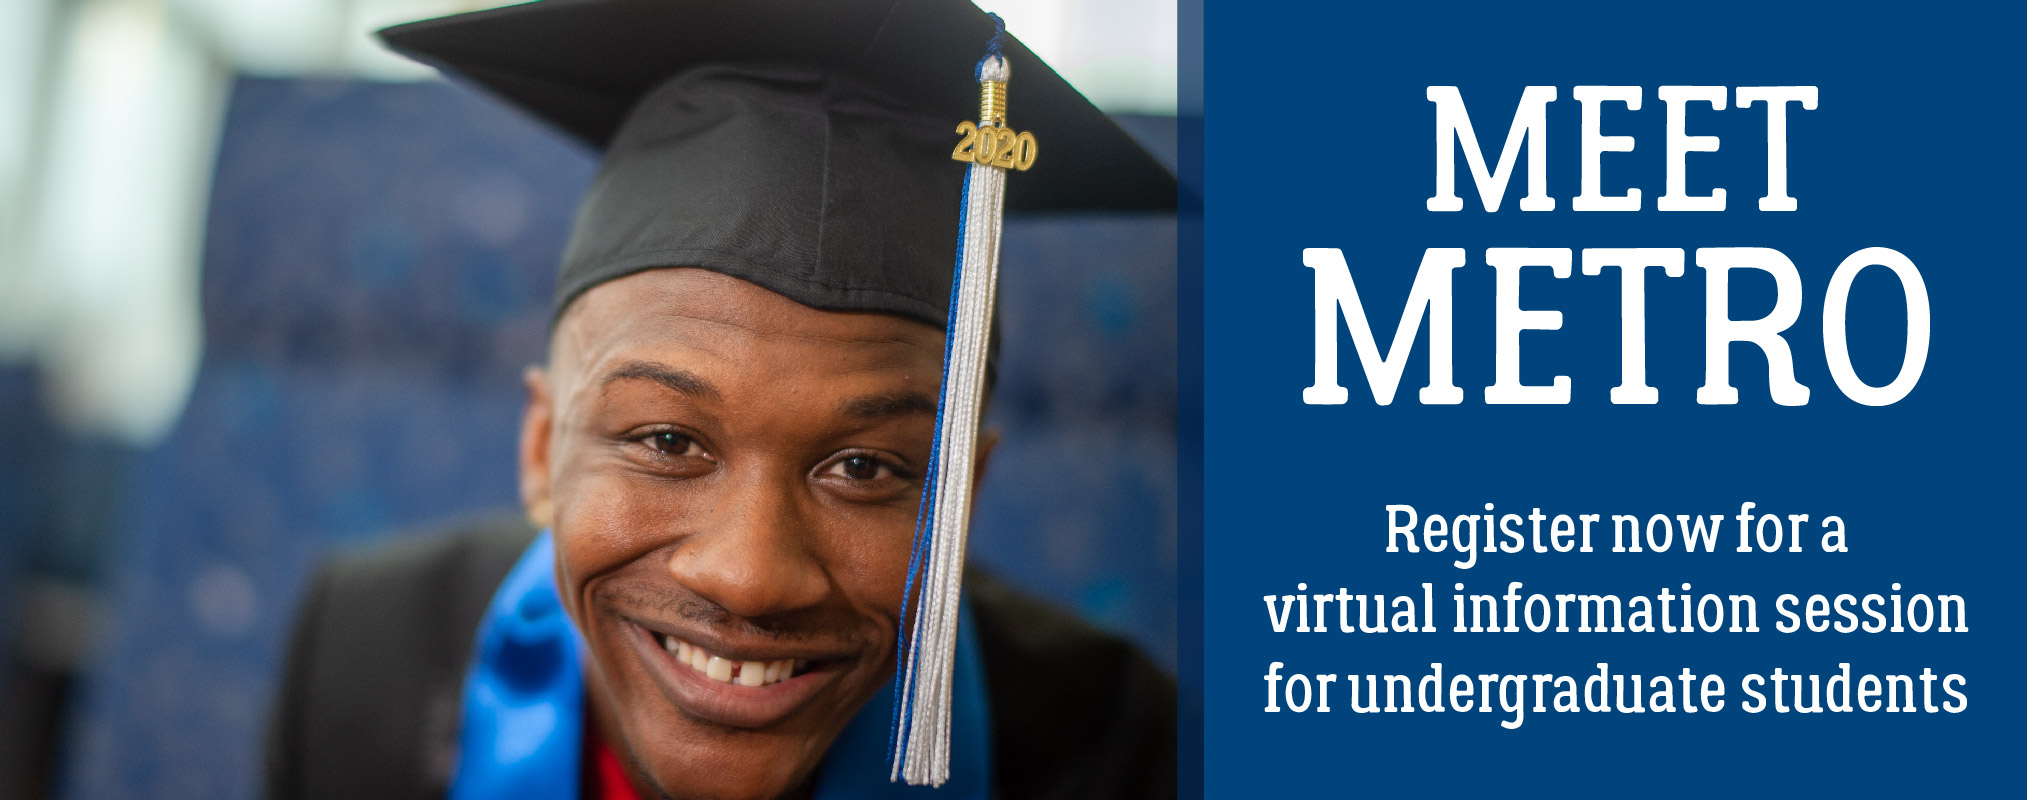 on left, a photo of a smiling young man of color leaning into the camera wearing a graduation cap. Text on the right says, Meet Metro Register no for a virtual information session for undergraduate students